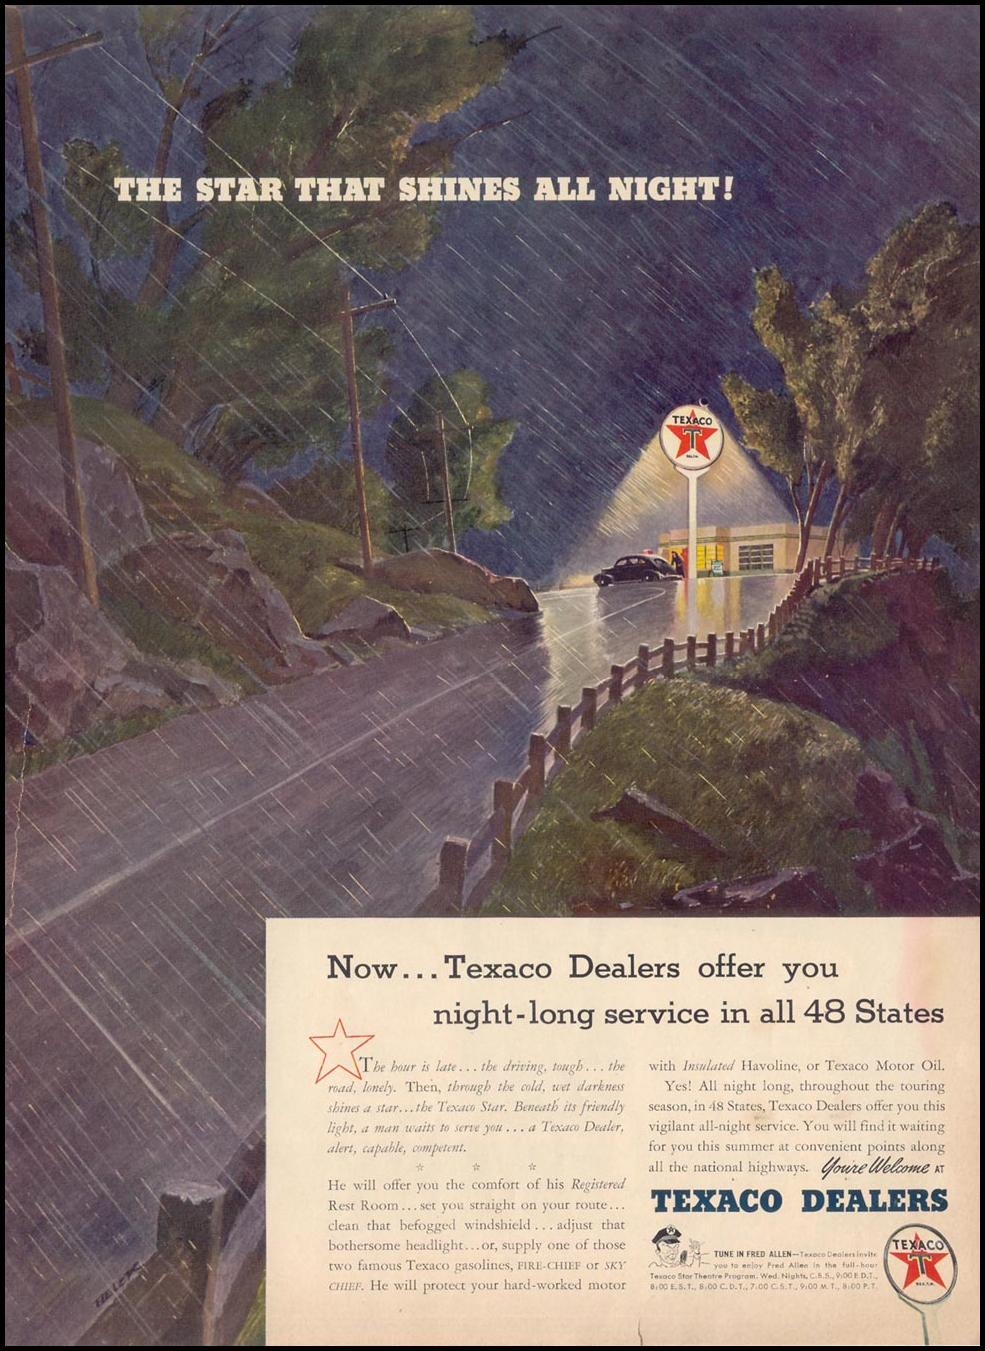 TEXACO ALL-NIGHT SERVICE